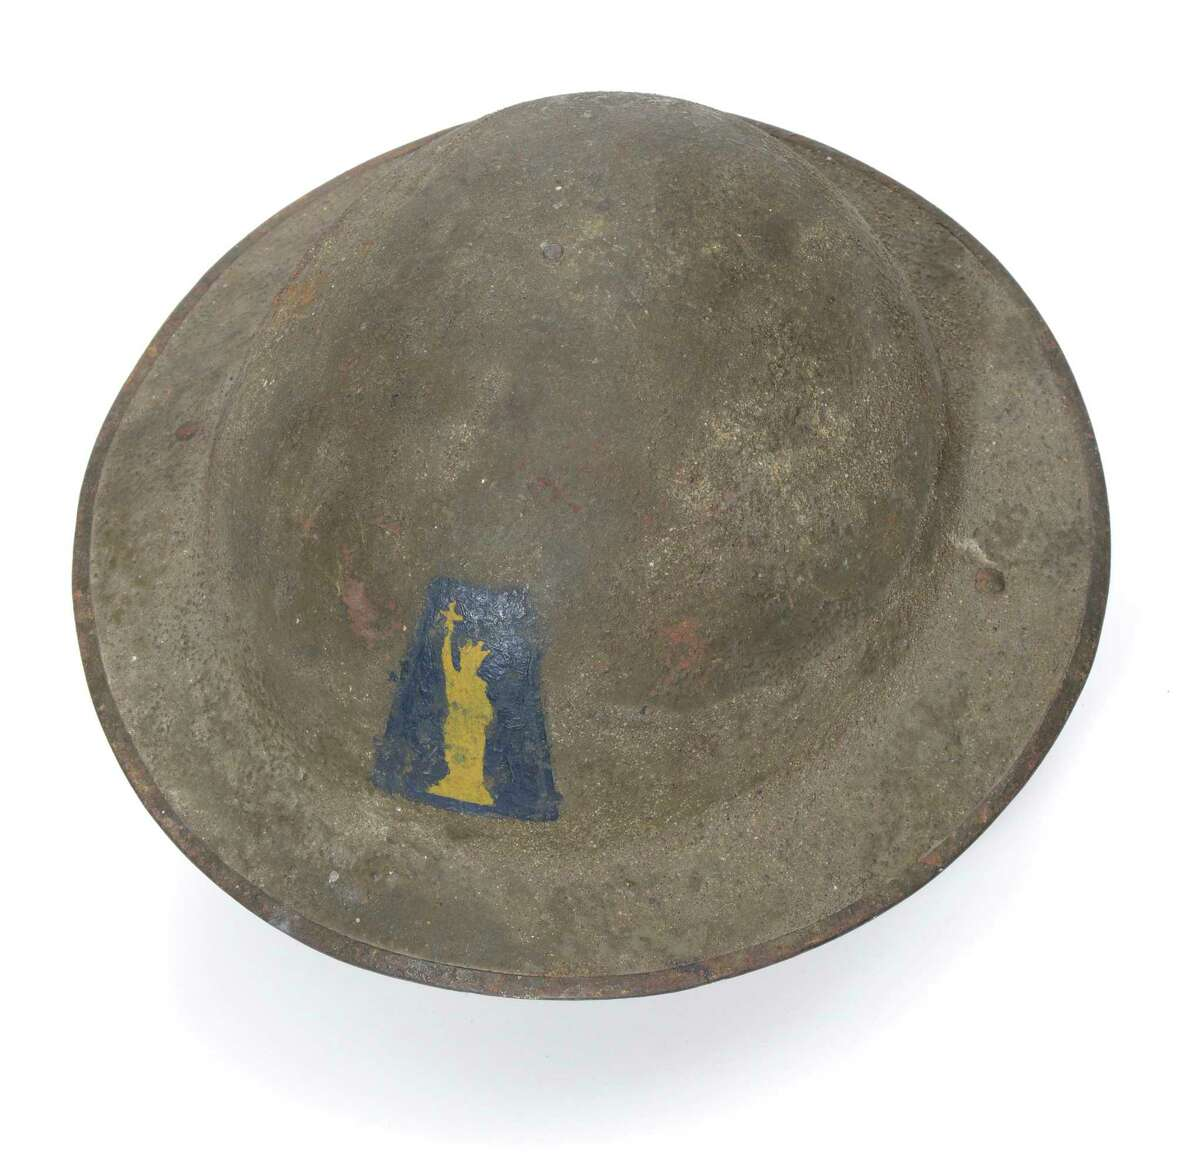 The State Museum in Albany exhibit on the centennial of World War I, A Spirit of Sacrifice: New York State in the First World War, will be on display from April 15, 2017, through June 3, 2018. Steel Helmet, 77th ?